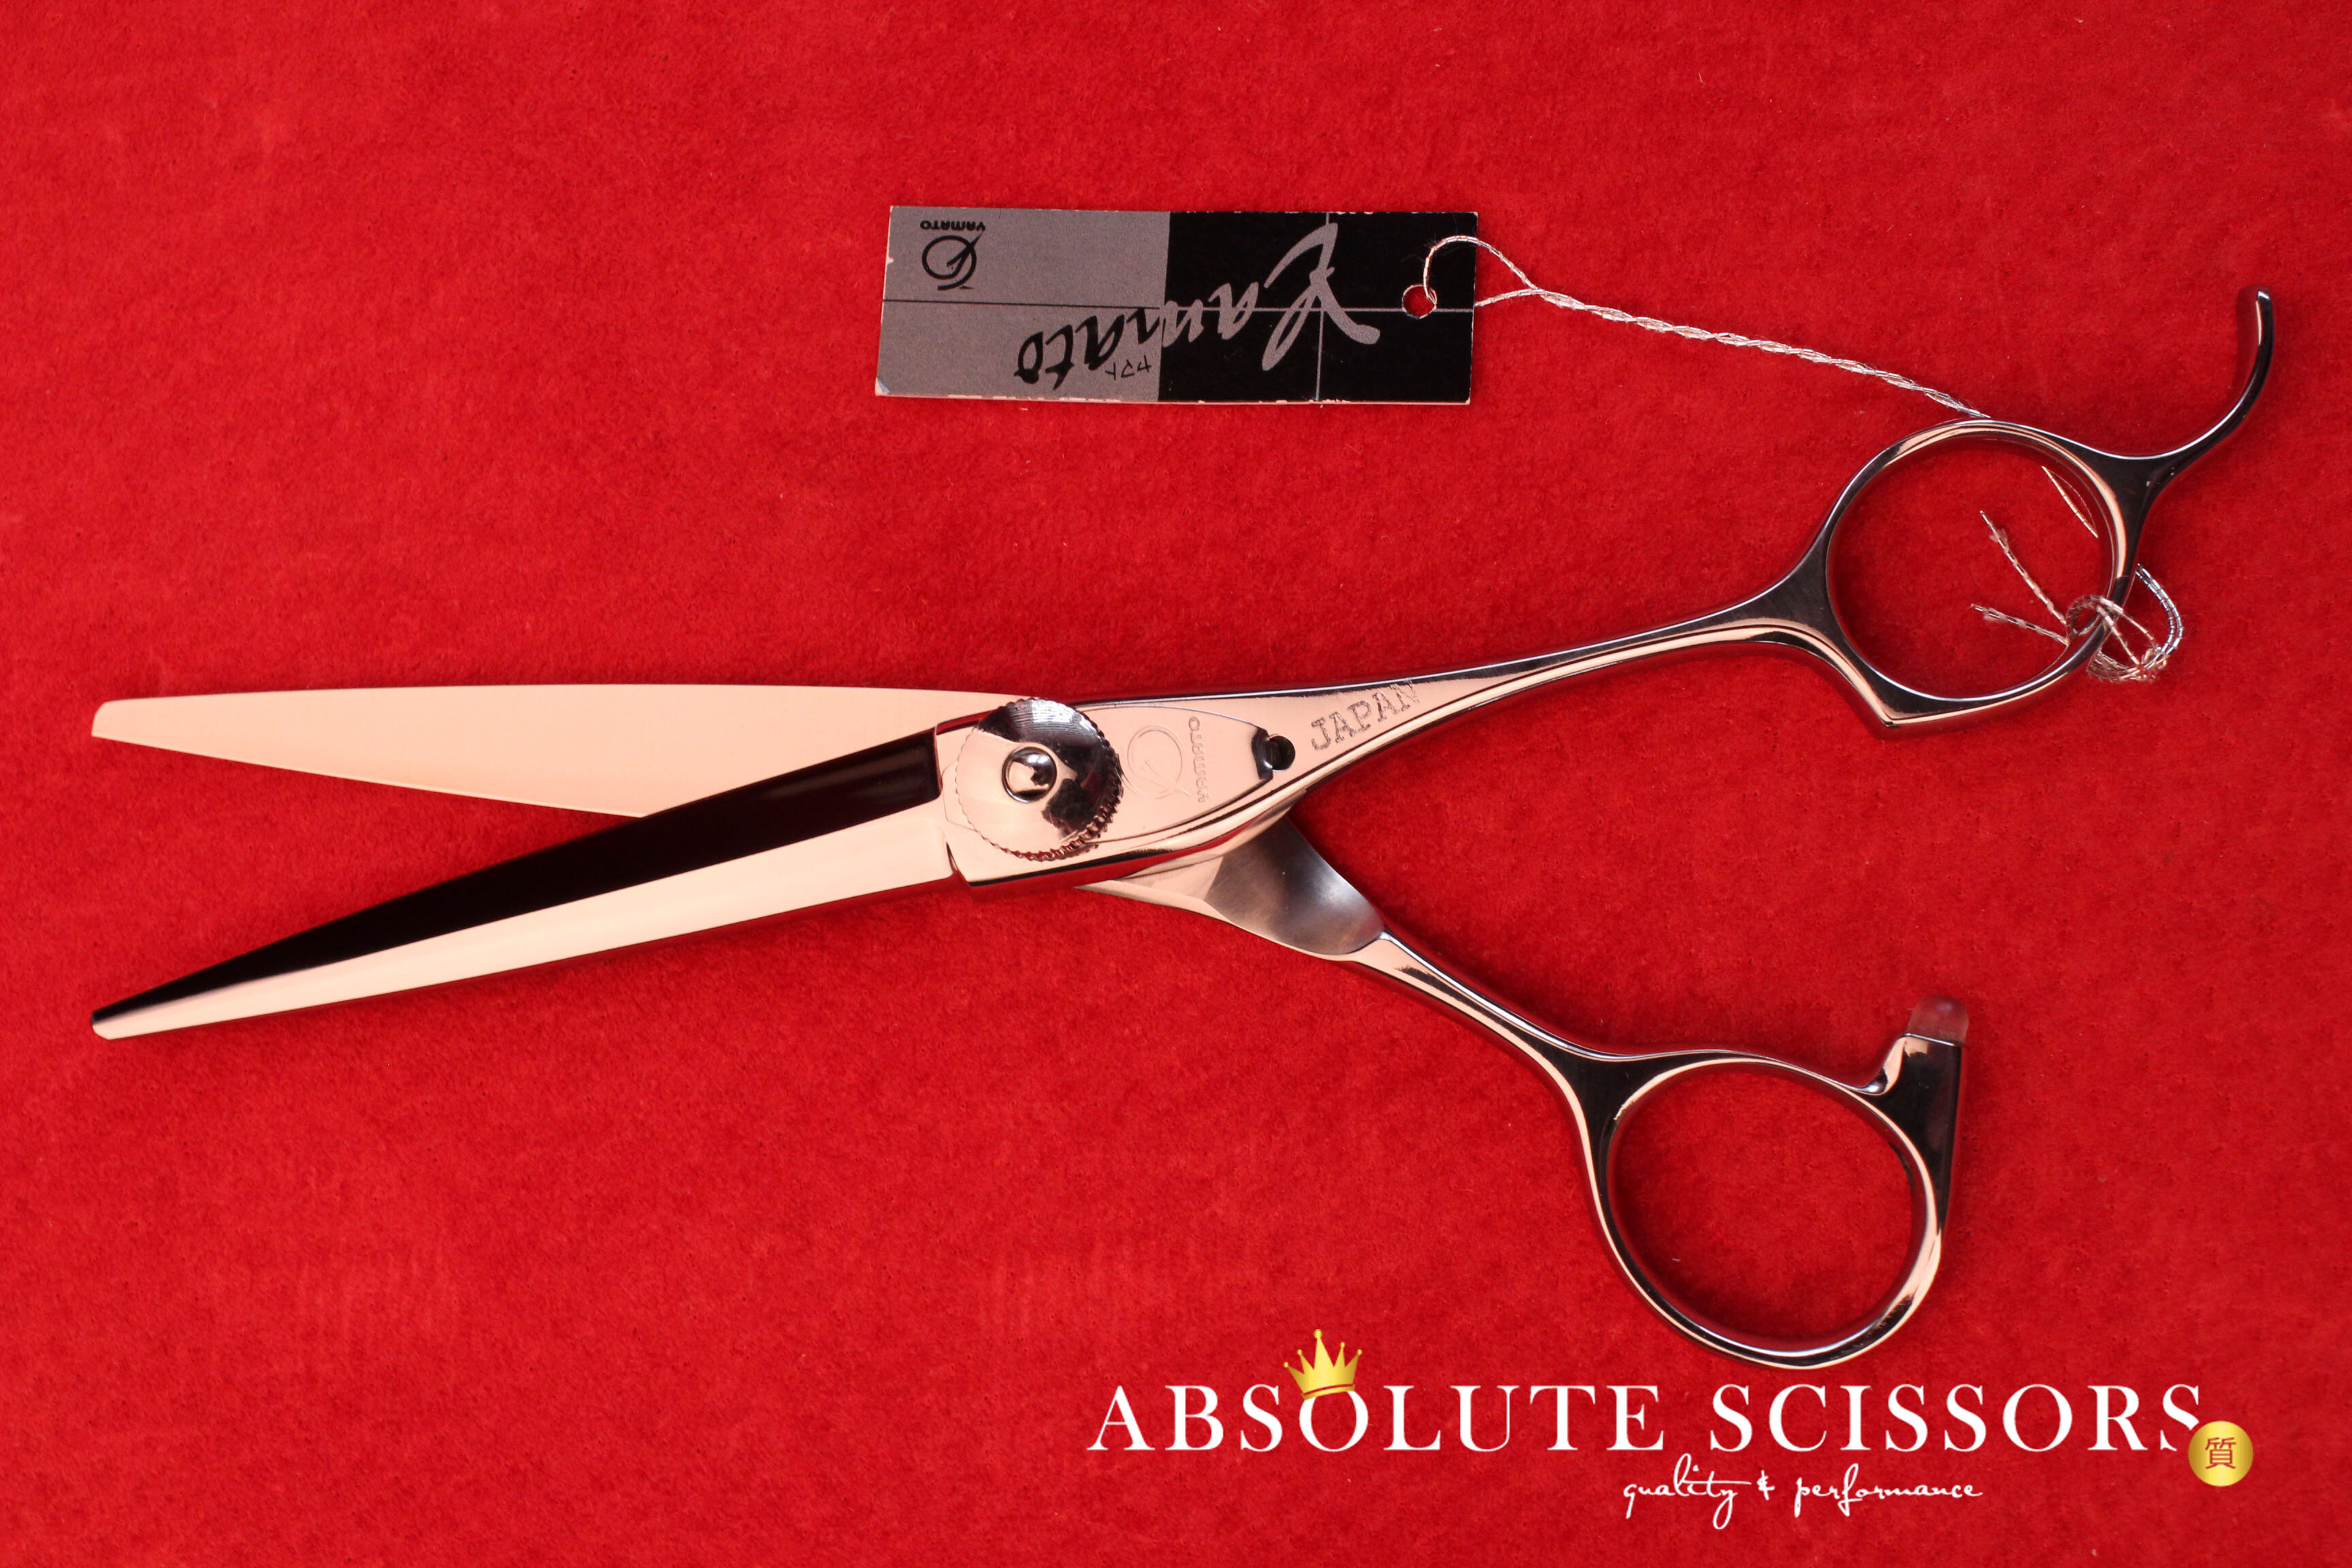 Royal-W60-3746-Yamato-hair-scissors-size-6-inches